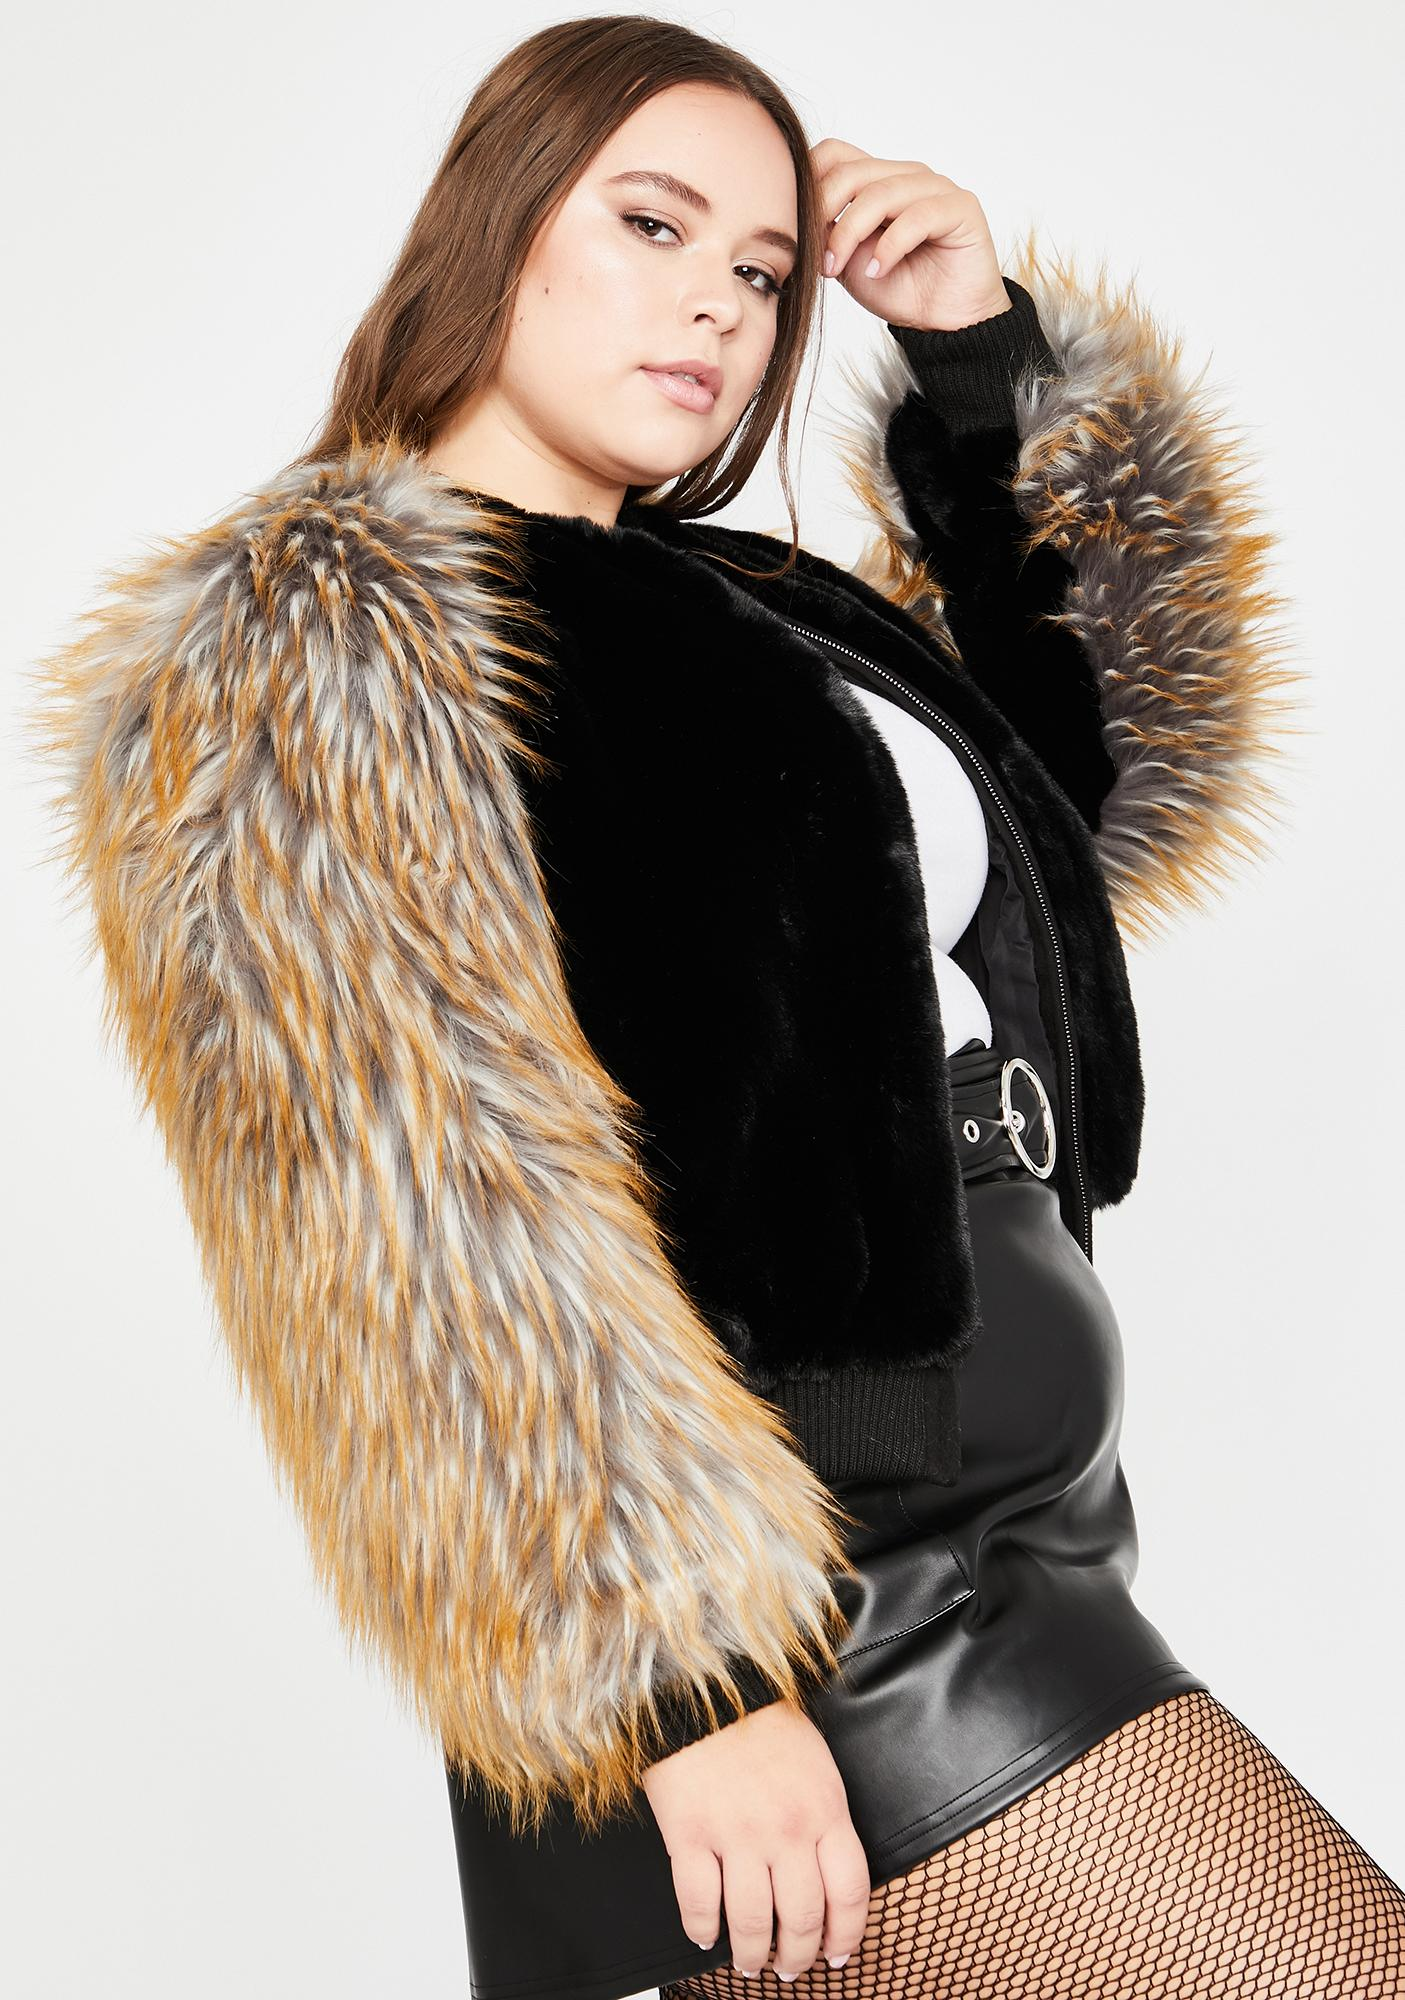 She Plays No Games Faux Fur Jacket